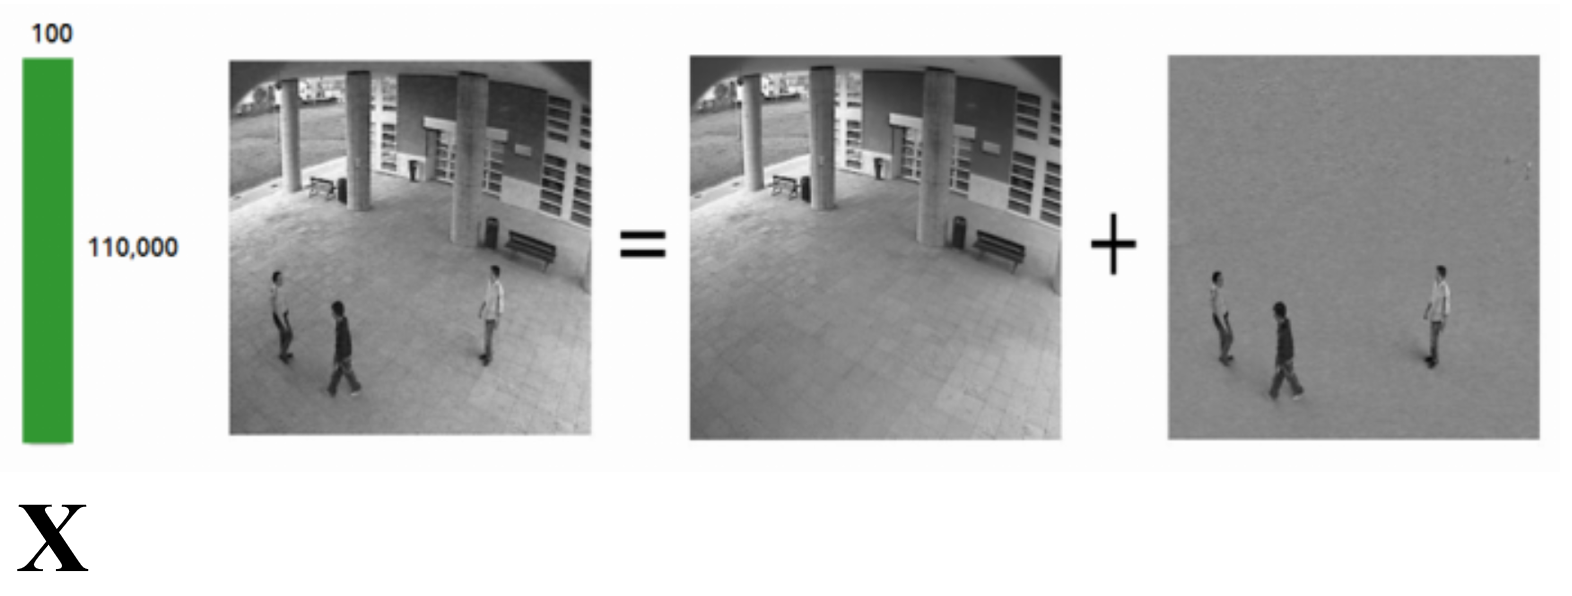 Robust PCA in video surveillance